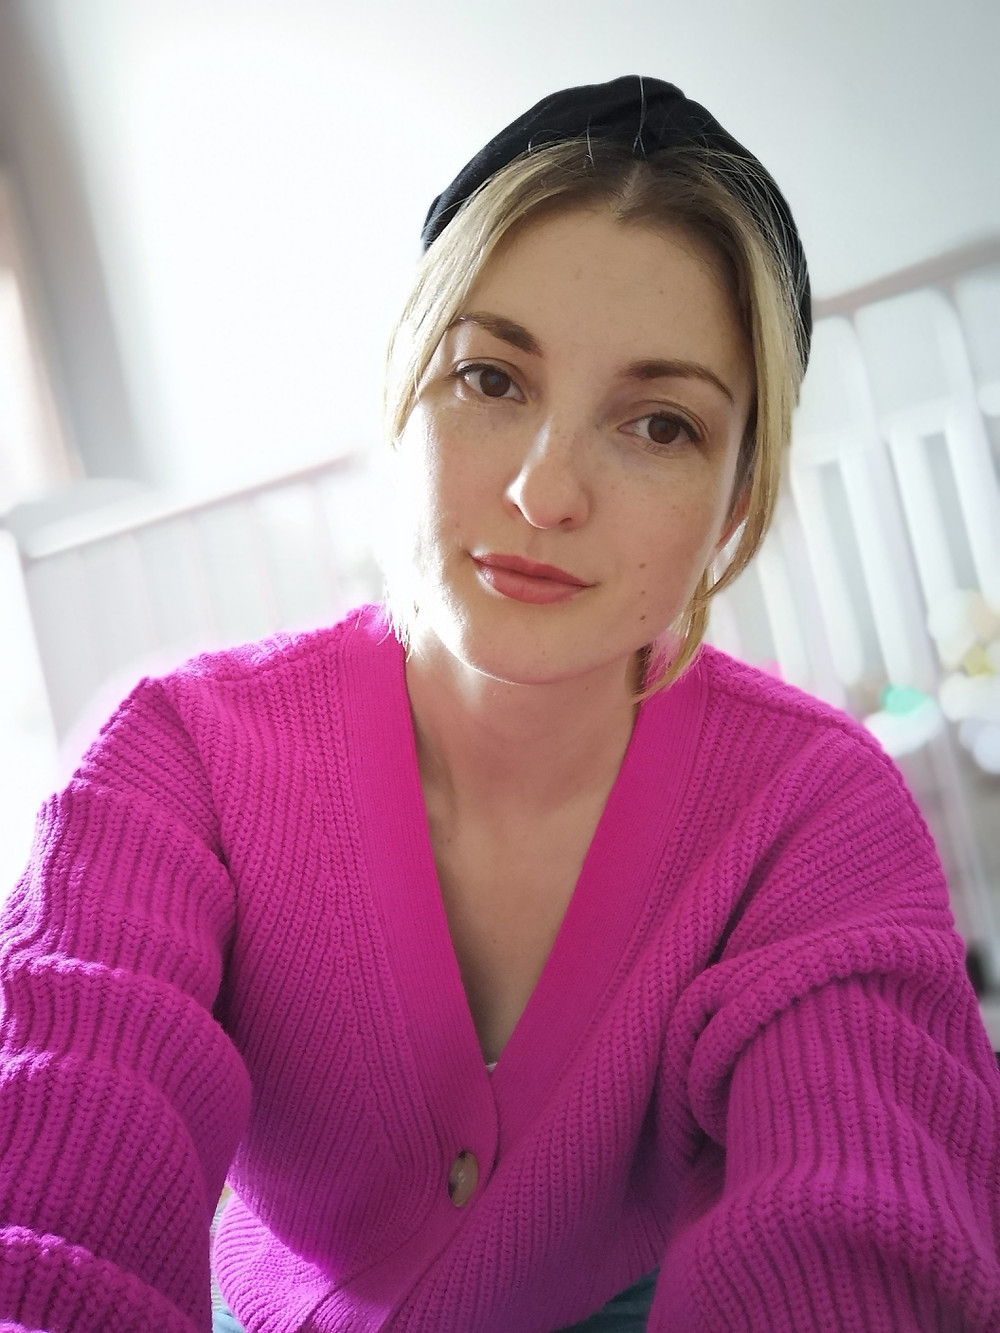 Harriet Goodings wearing a pink cardigan